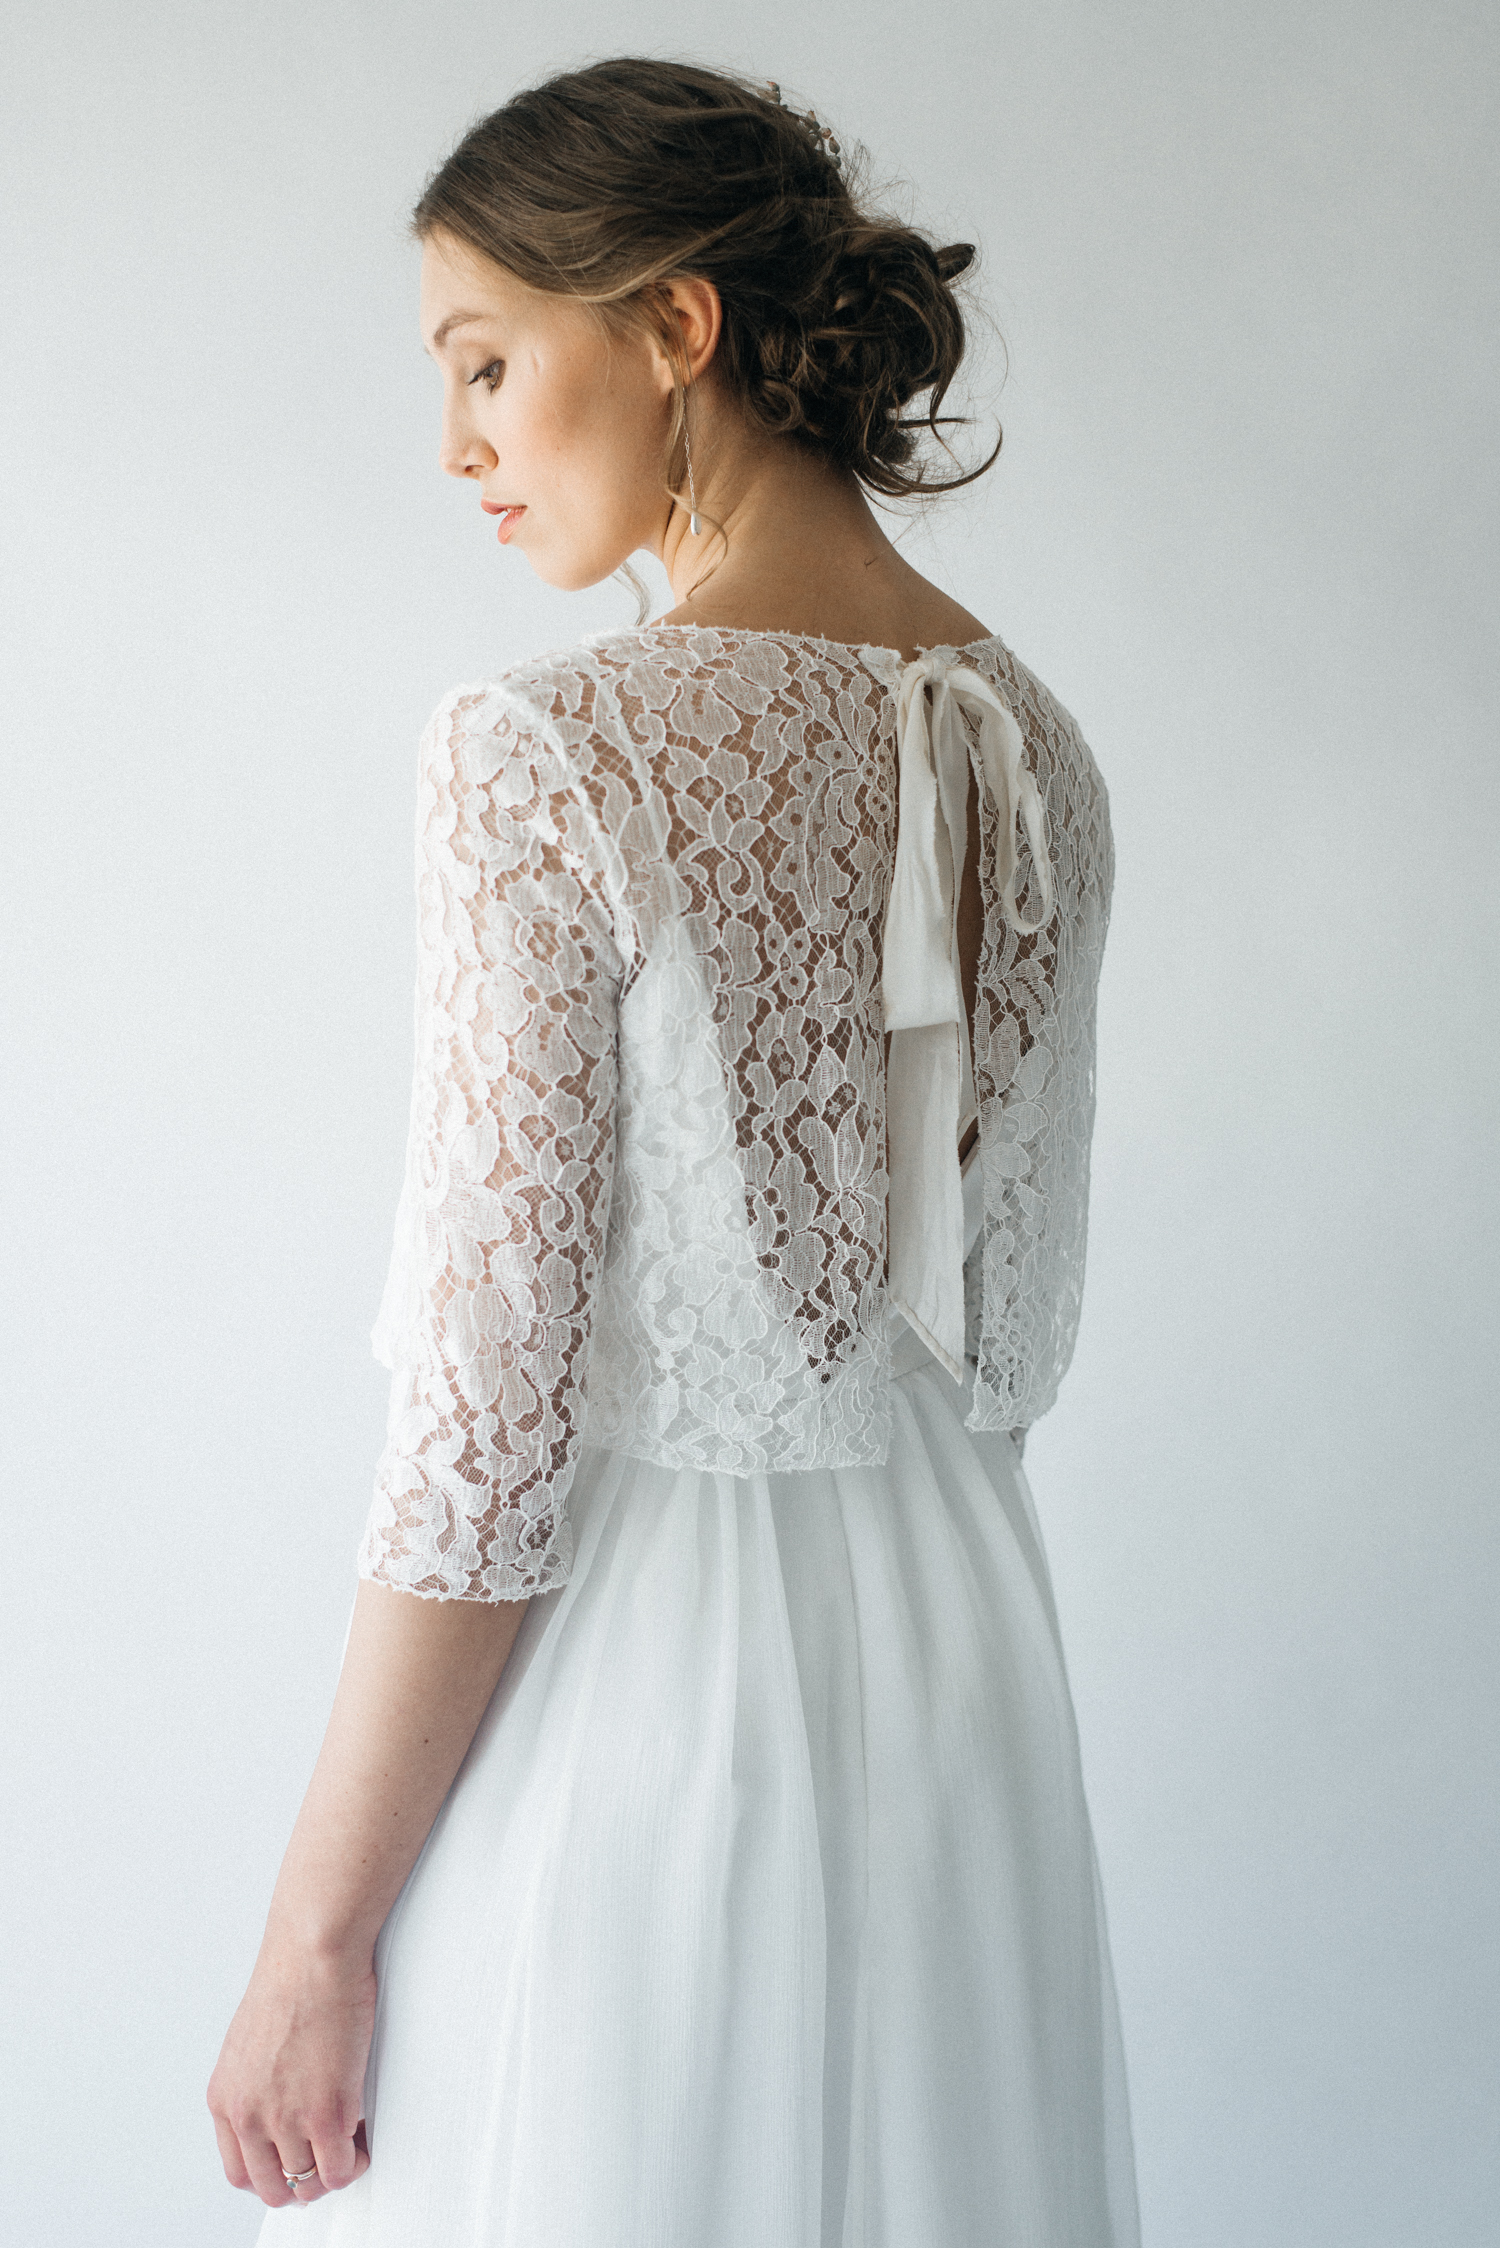 Organic Bridalwear by Claire Headdon // Photography by Olivia Bossert // www.oliviabossert.com // wedding, bride, bridalwear, wedding dress, white dress, lace, organic, handmade, cornwall